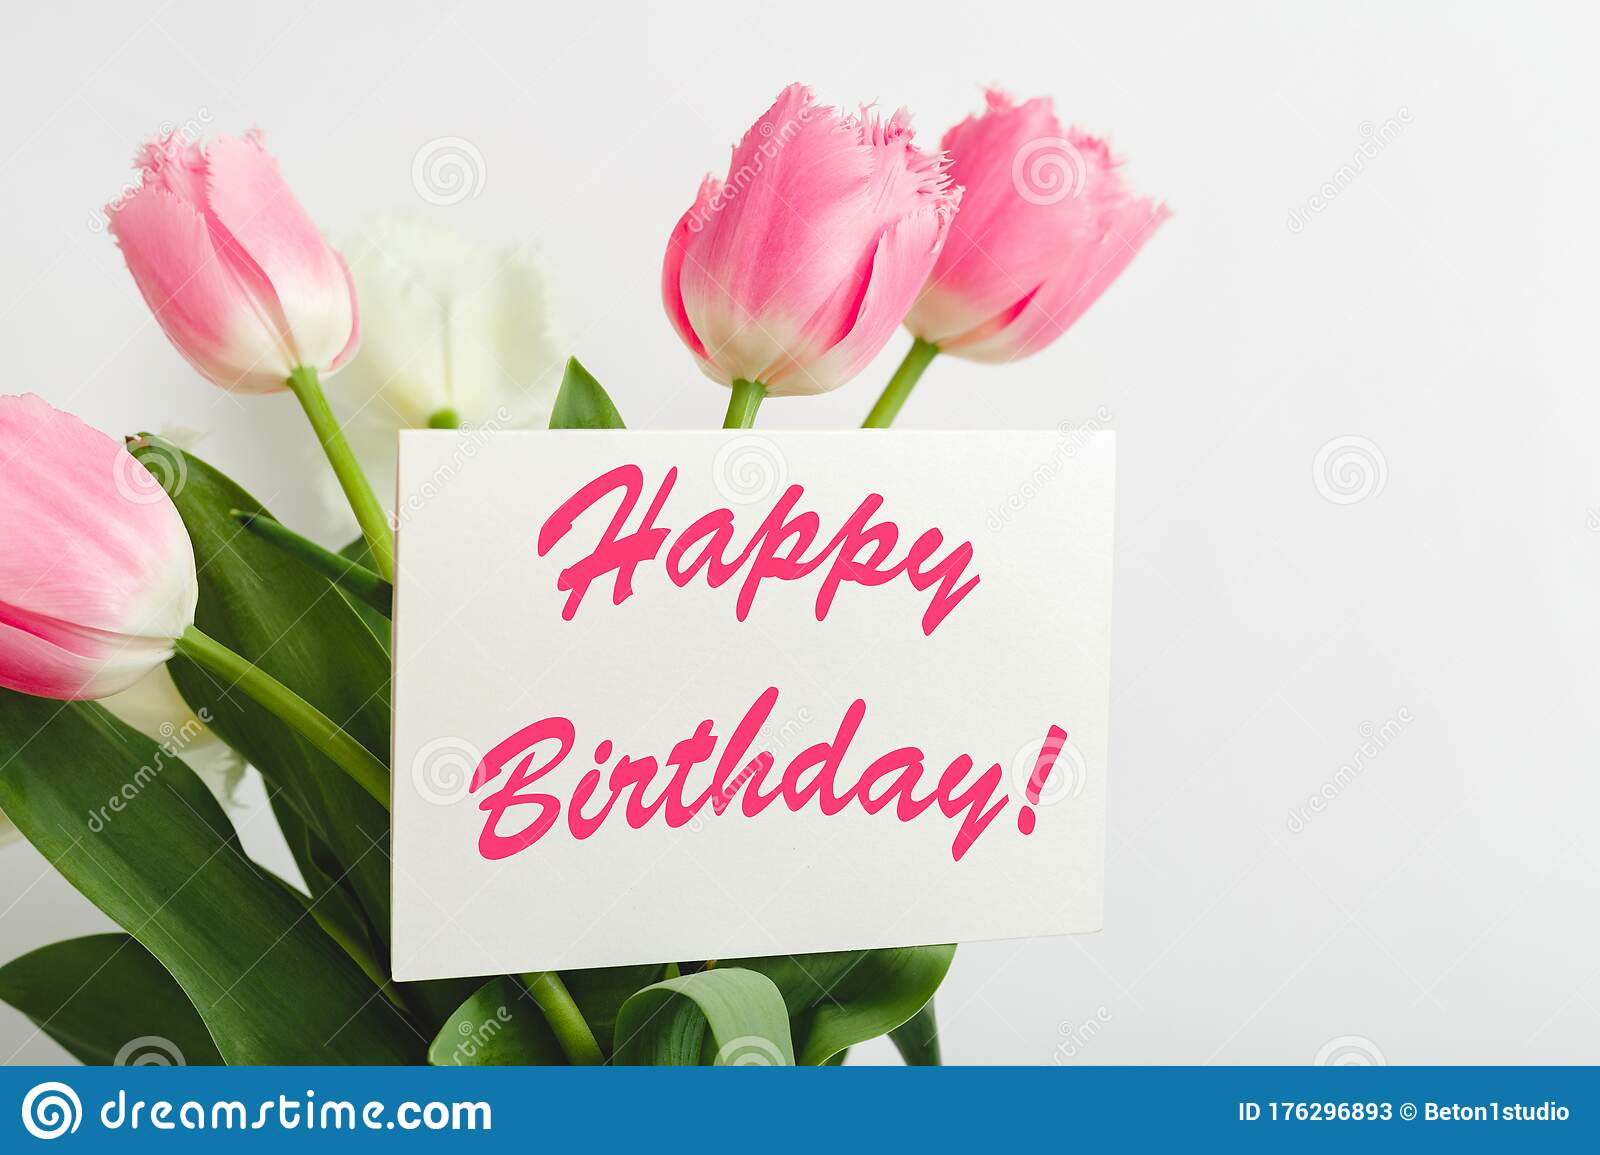 50 342 Happy Birthday Flowers Photos Free Royalty Free Stock Photos From Dreamstime